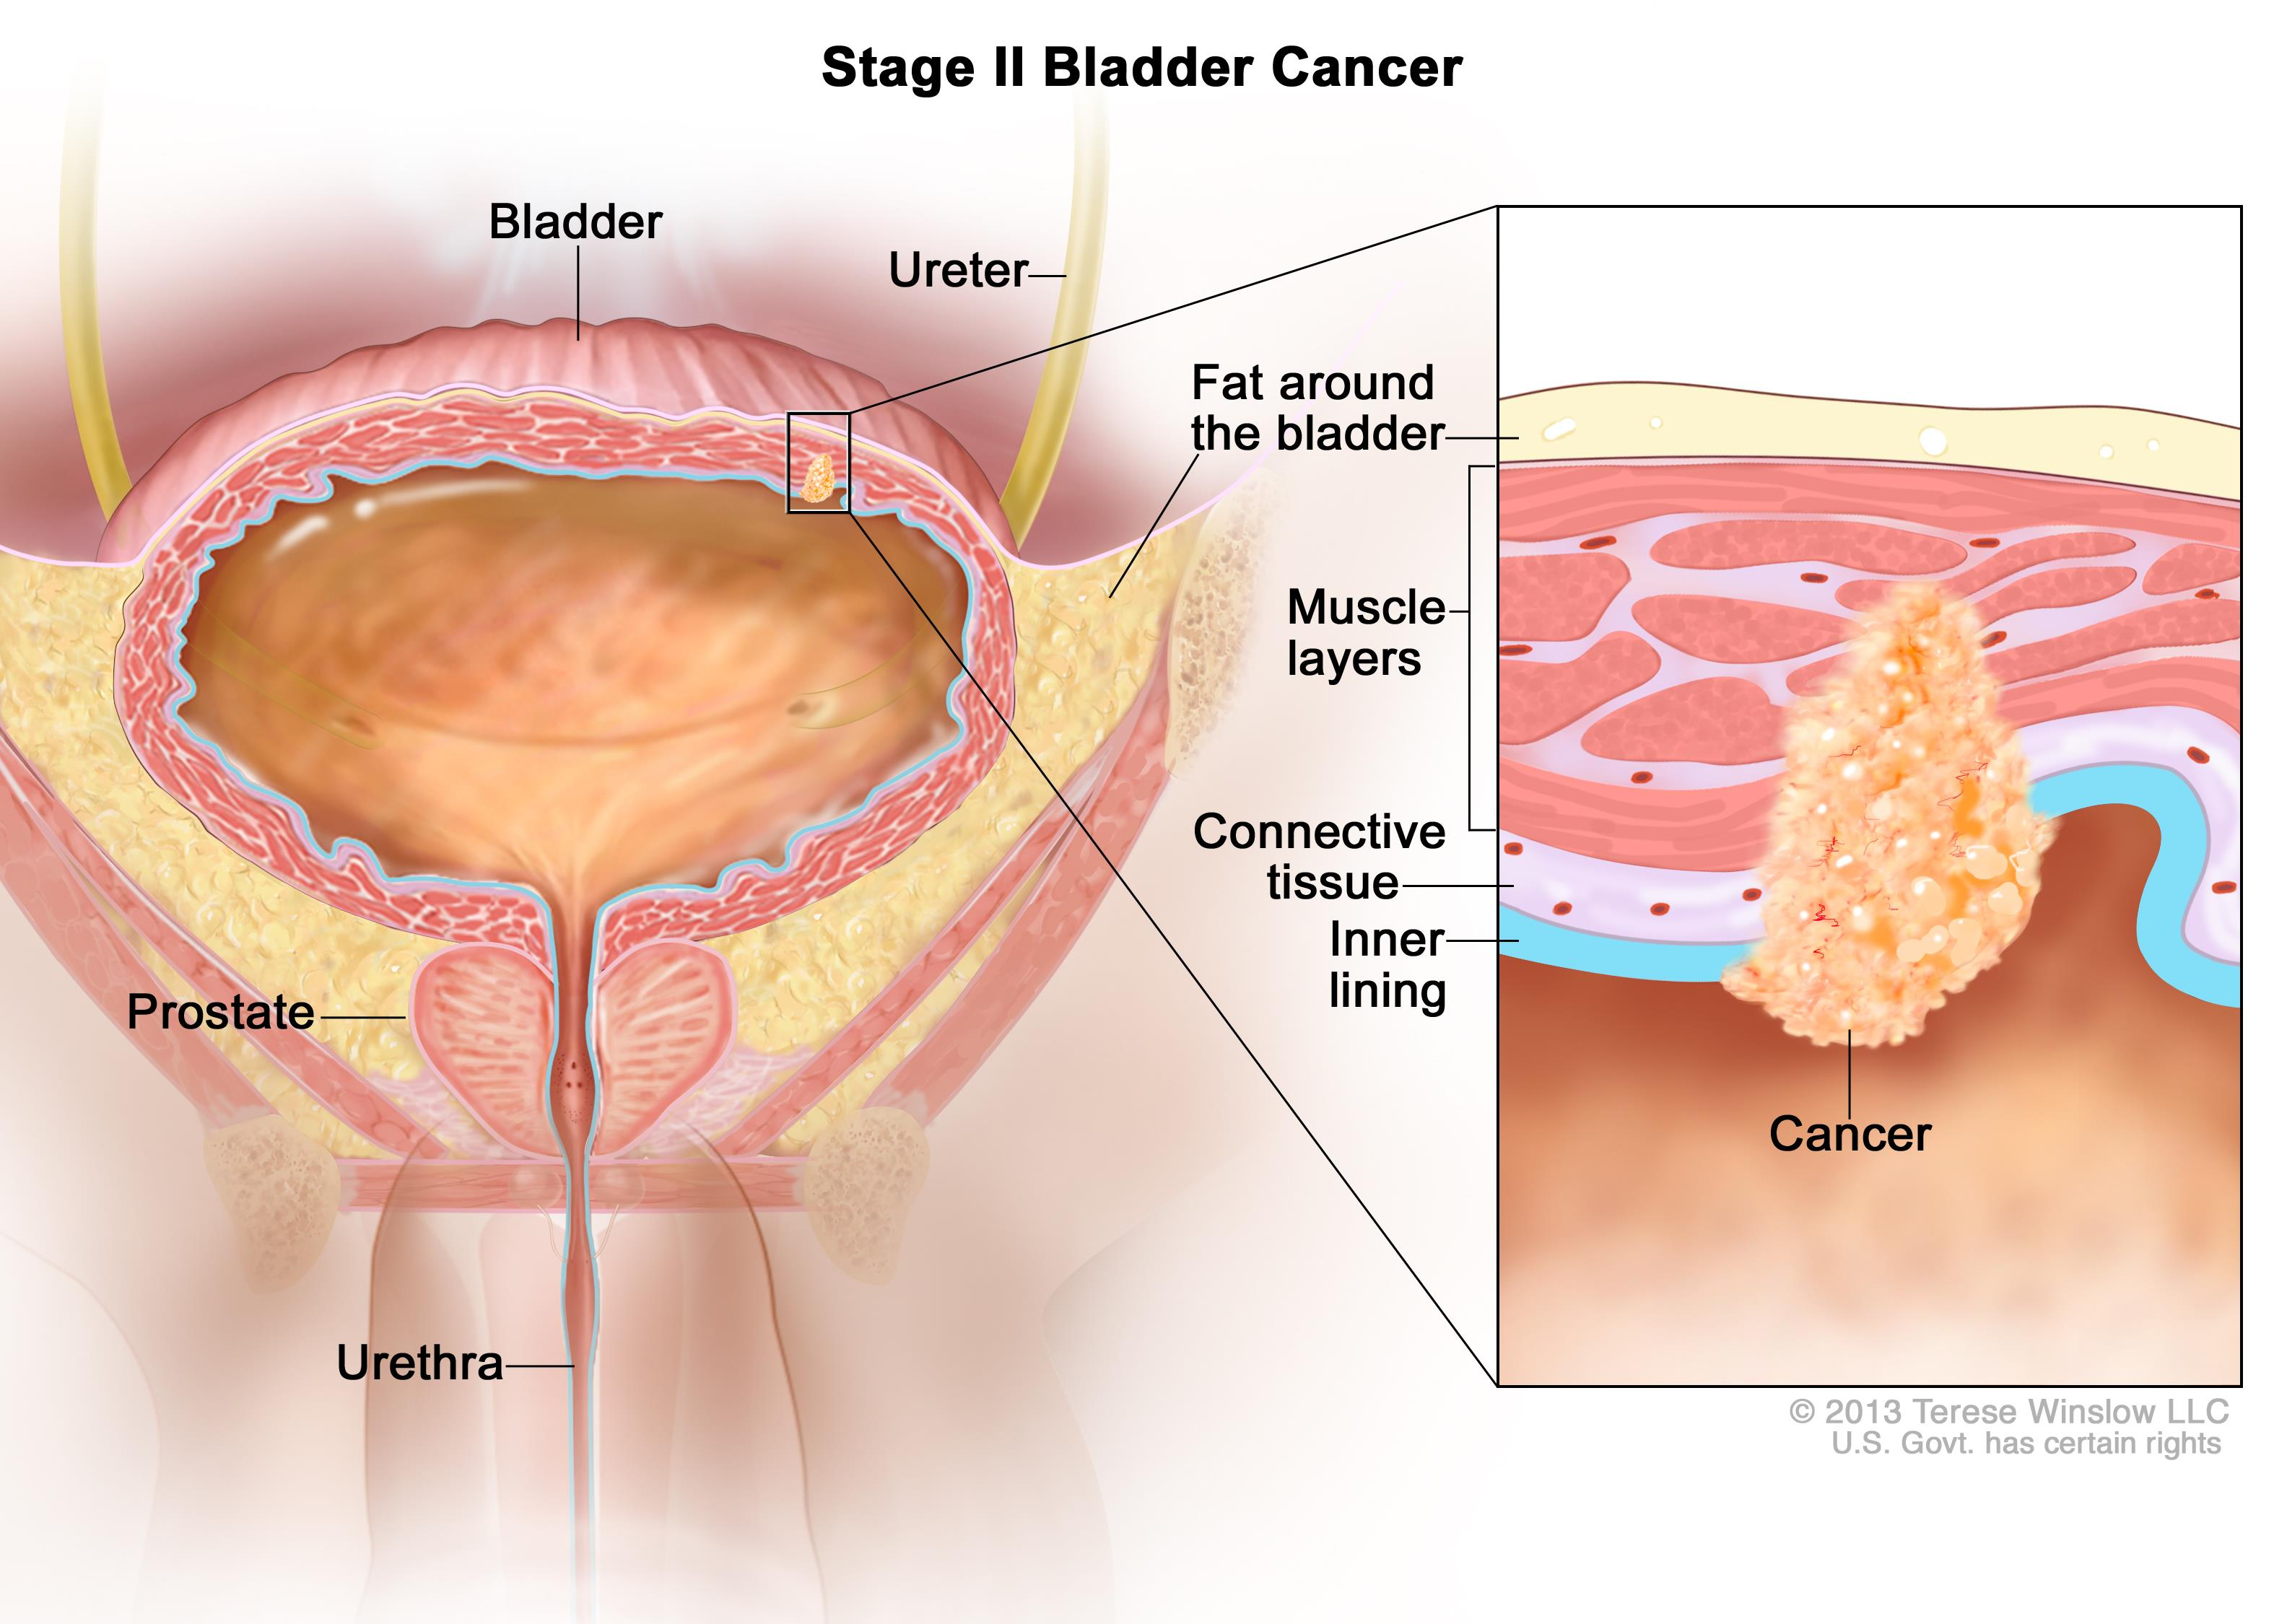 Hpv 16 and bladder cancer